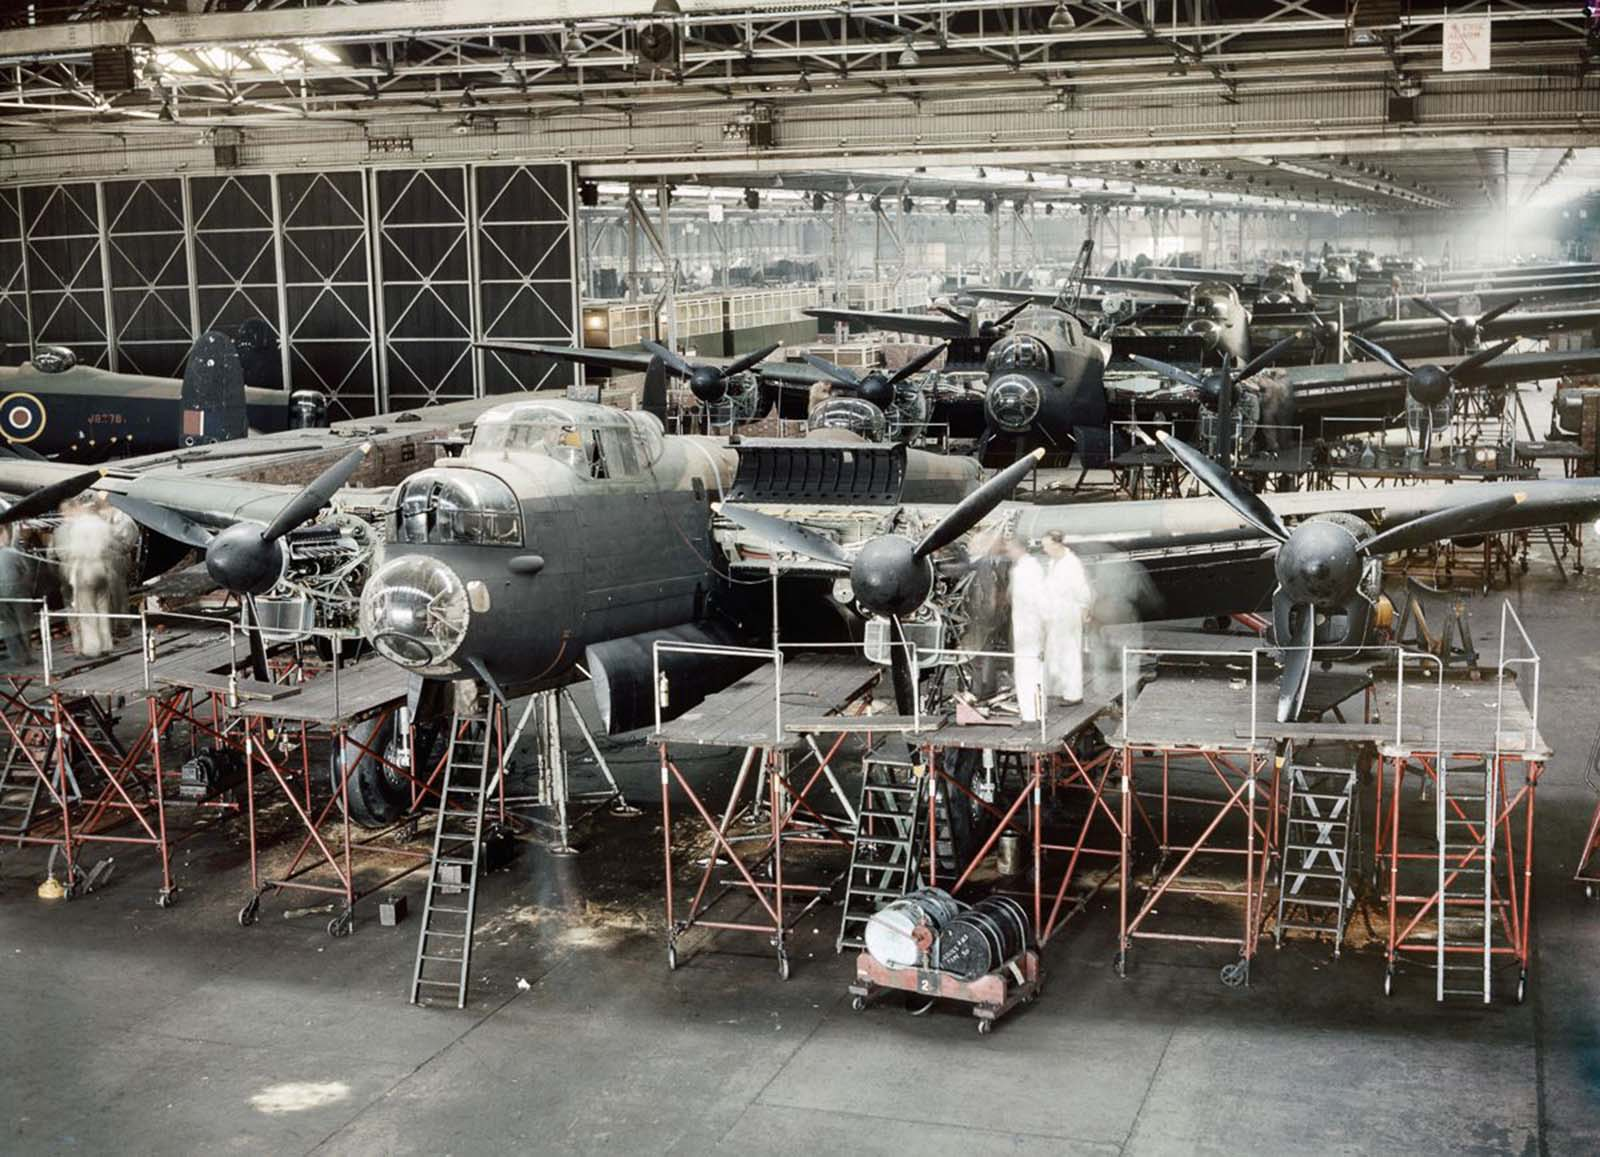 Lancaster bombers nearing completion in Avro's assembly plant at Woodford near Manchester. 1943.